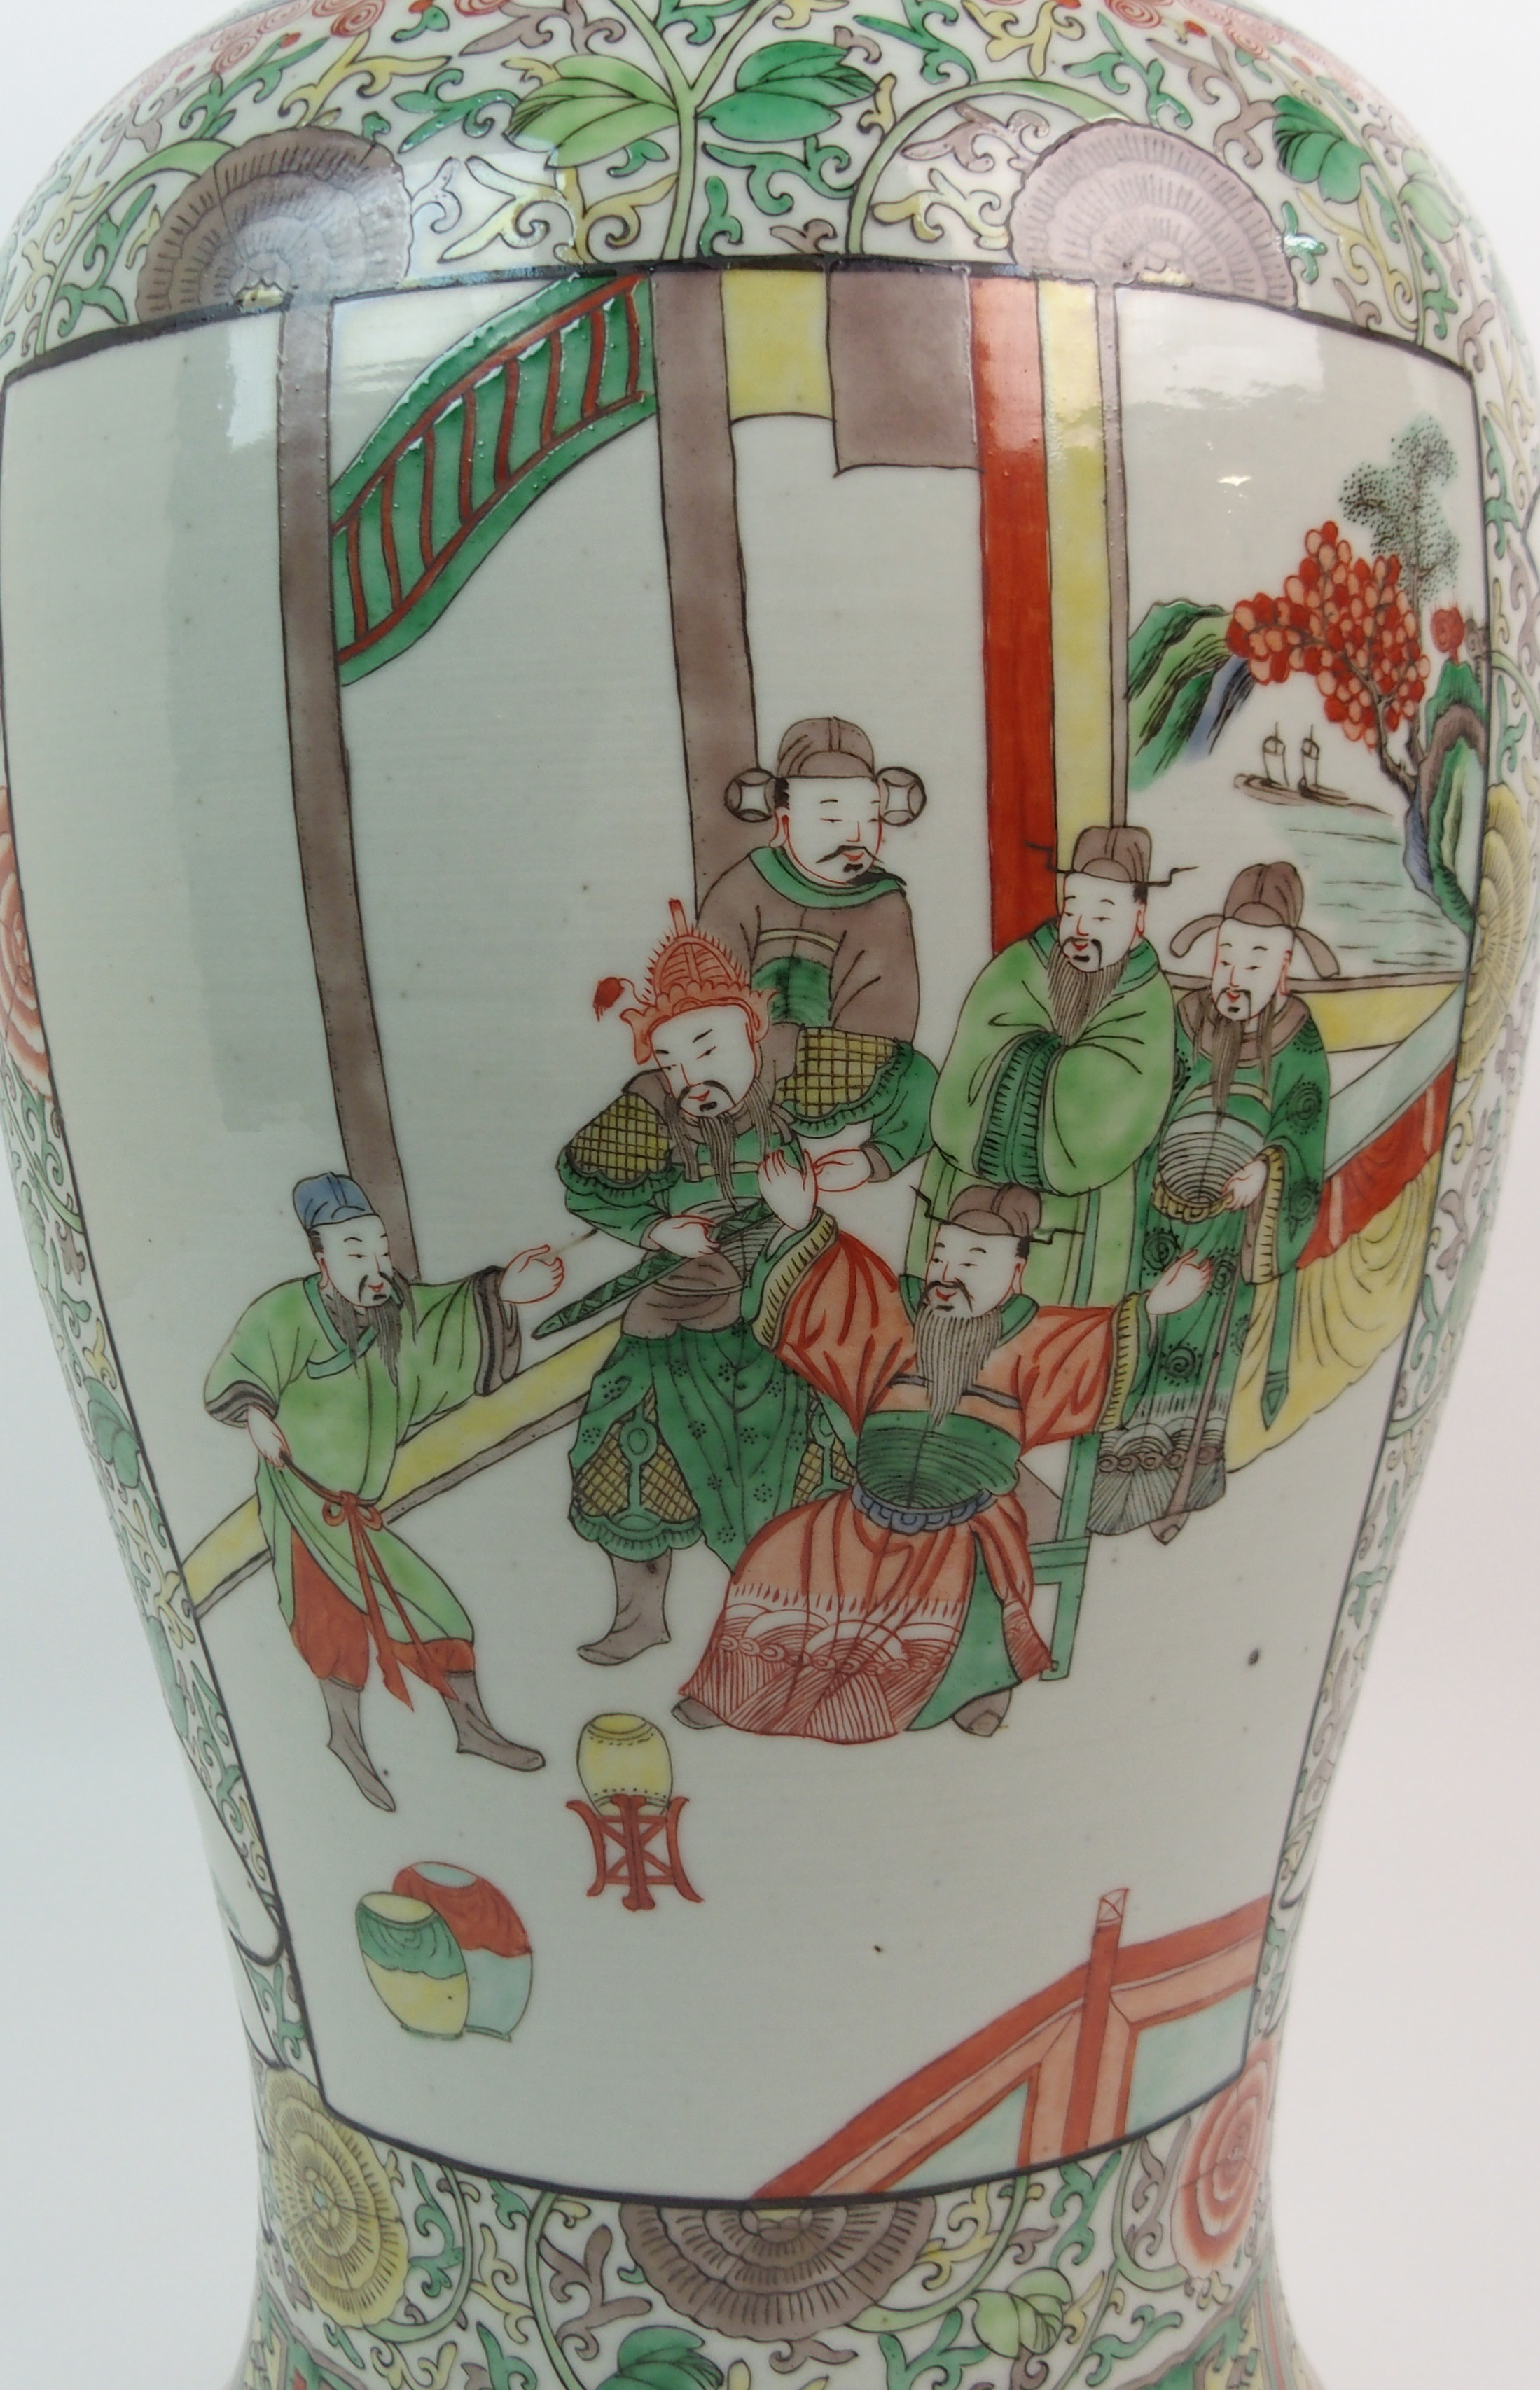 A CHINESE FAMILLE VERTE LARGE BALUSTER VASE painted with panels of figures surrounded by flowers and - Image 7 of 10